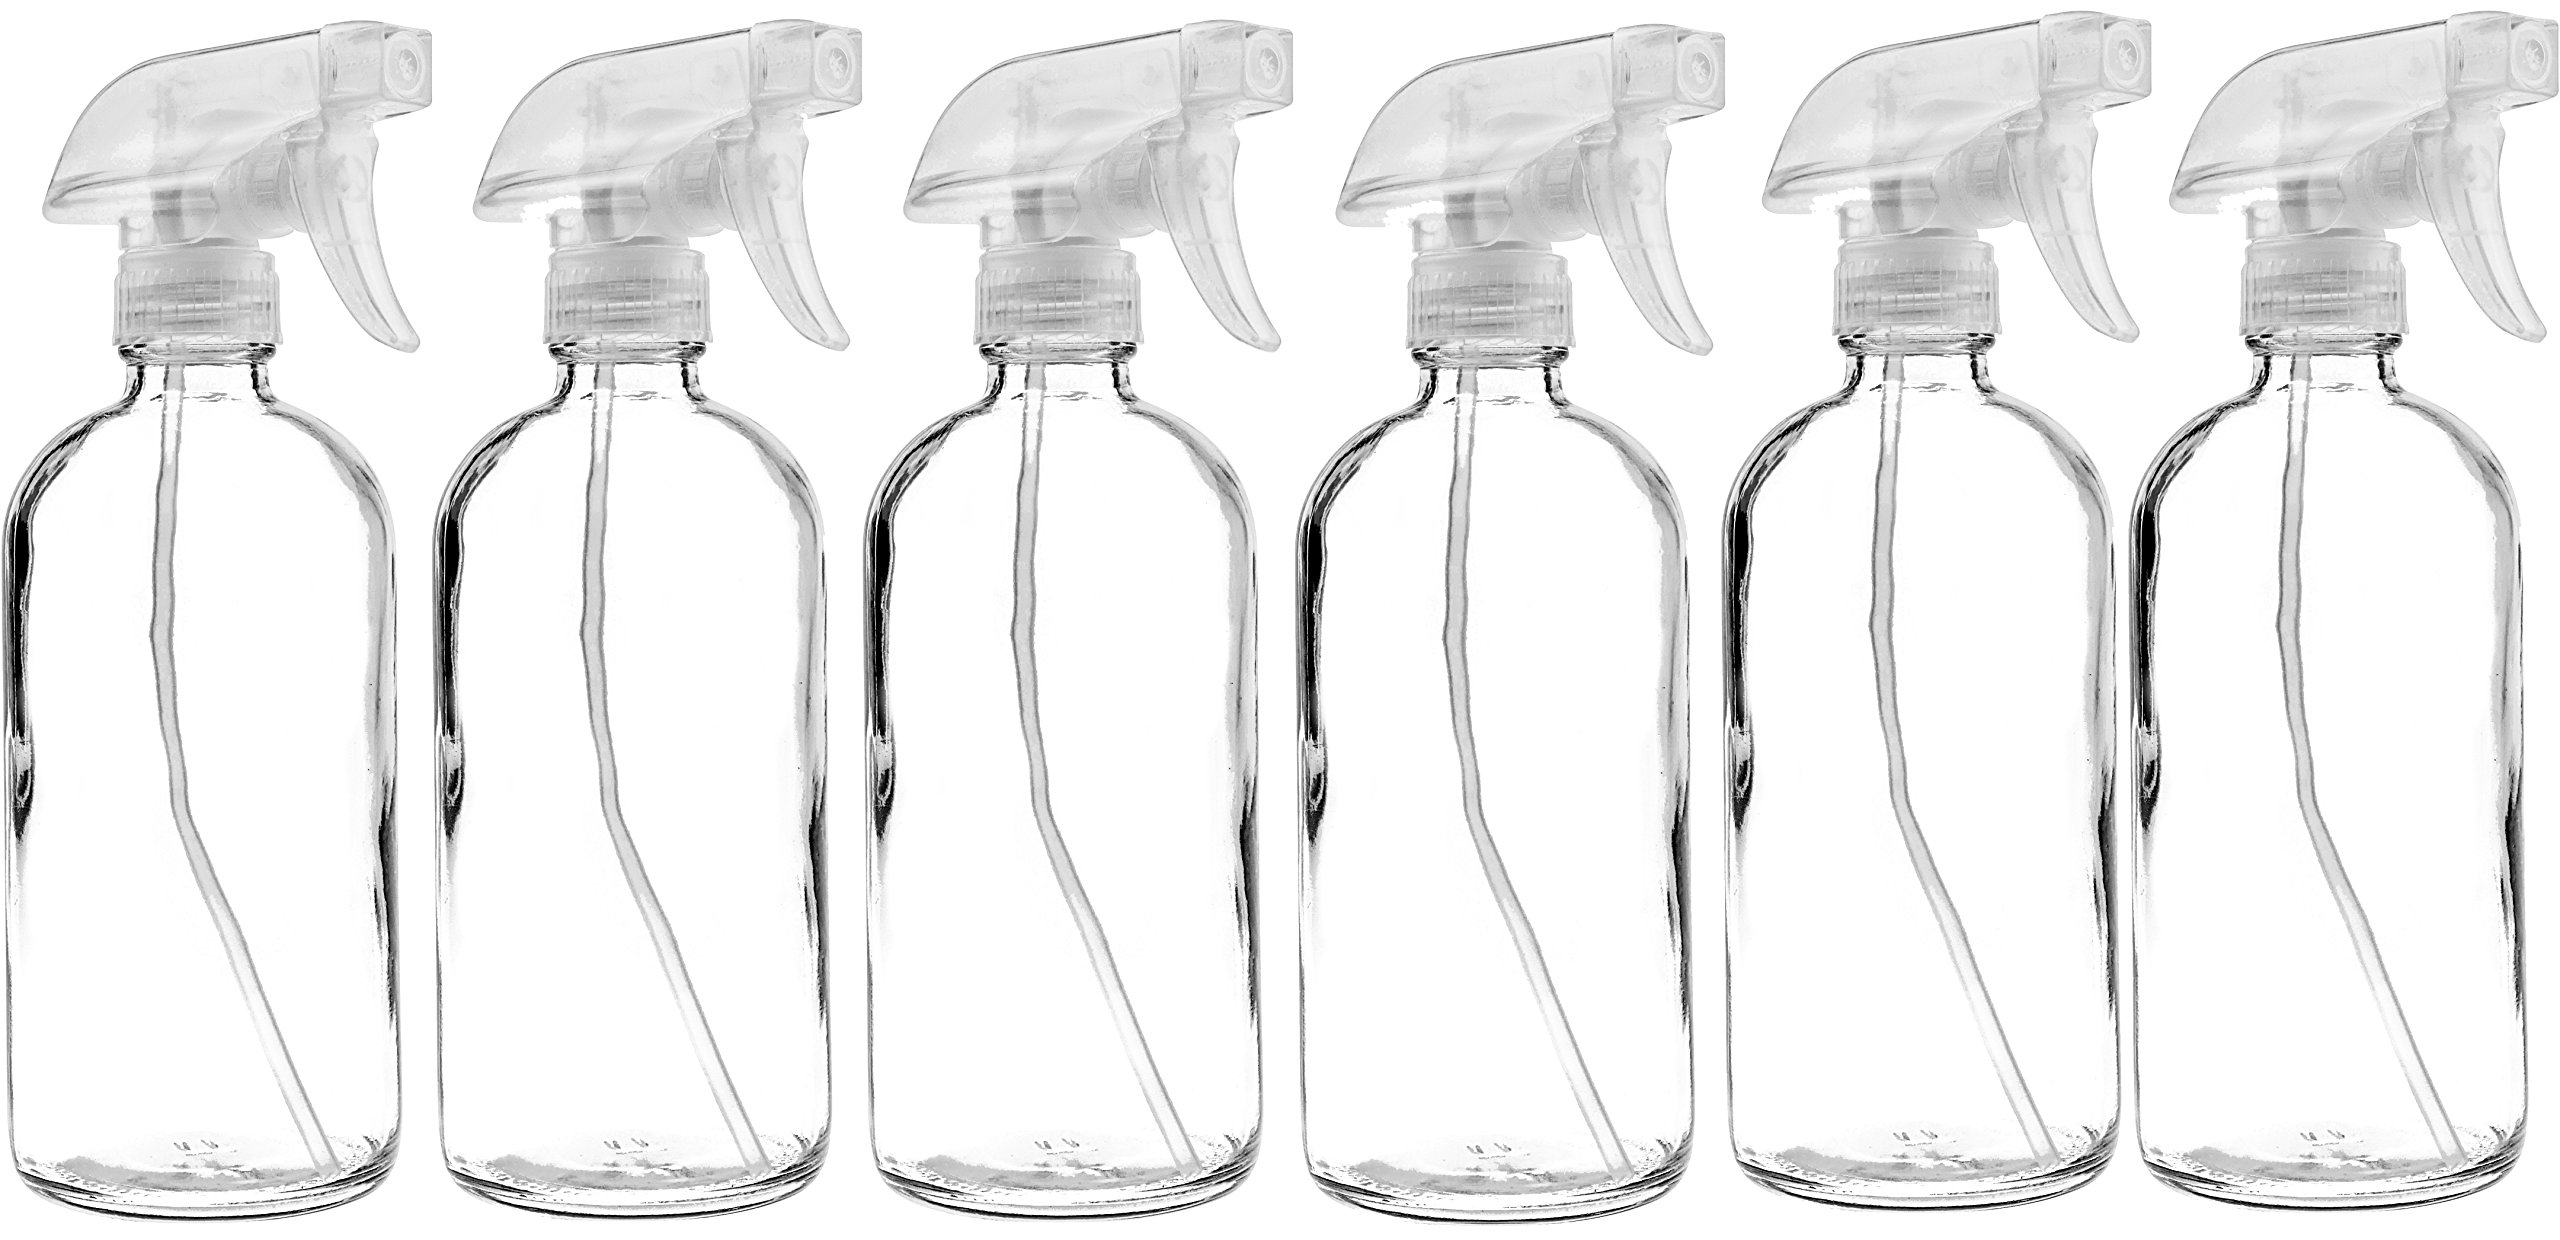 16oz Clear Glass Spray Bottle with Clear Spray Nozzle - 6 Pack